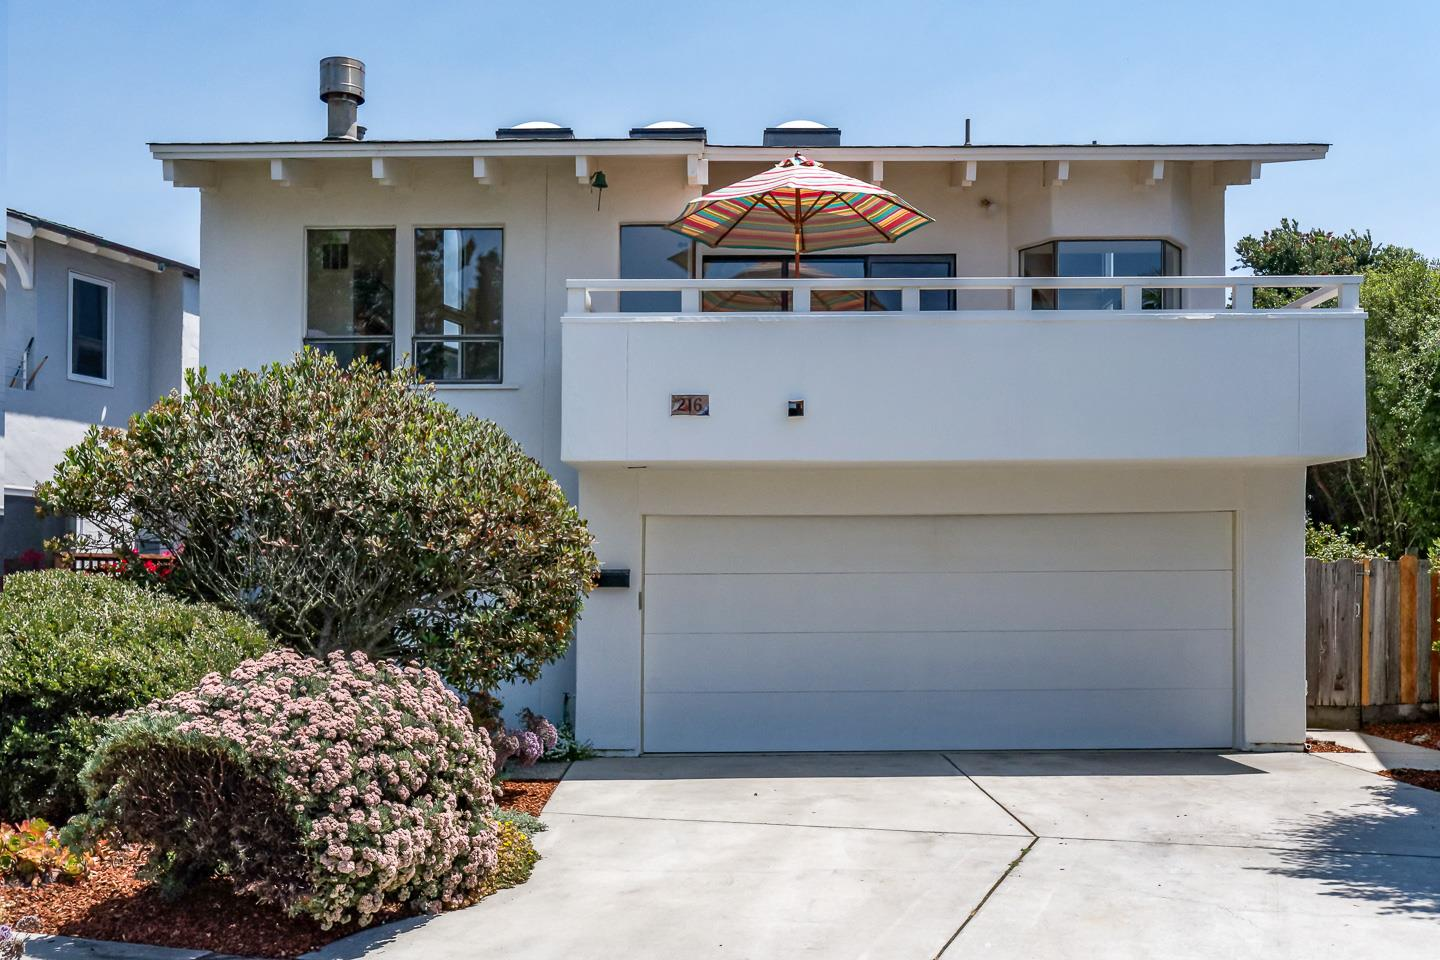 Sweeping WHITE WATER views.  This special property is three doors from the sparkling Monterey Bay and just across the way from Natural Bridges State Beach. Featuring an open floorplan that accentuates the glistening Pacific Ocean and dramatic sunsets from the kitchen/living room and spacious front deck, the home offers an upstairs with soaring ceilings and skylights, hardwood floors, fireplace and master bedroom with a walk-in closet.  Downstairs two bedrooms plus a family room equipped with its own sink and countertop open onto a patio with pergola and backyard with mature landscaping.  Enjoy walks on West Cliff, excellent surfing, whale, bird and people watching.  Bicycle to Courtyard Commons, New Leaf & a multitude of local restaurants.  Buyers searching for that unique opportunity to enjoy your life by the Bay...you have found it!